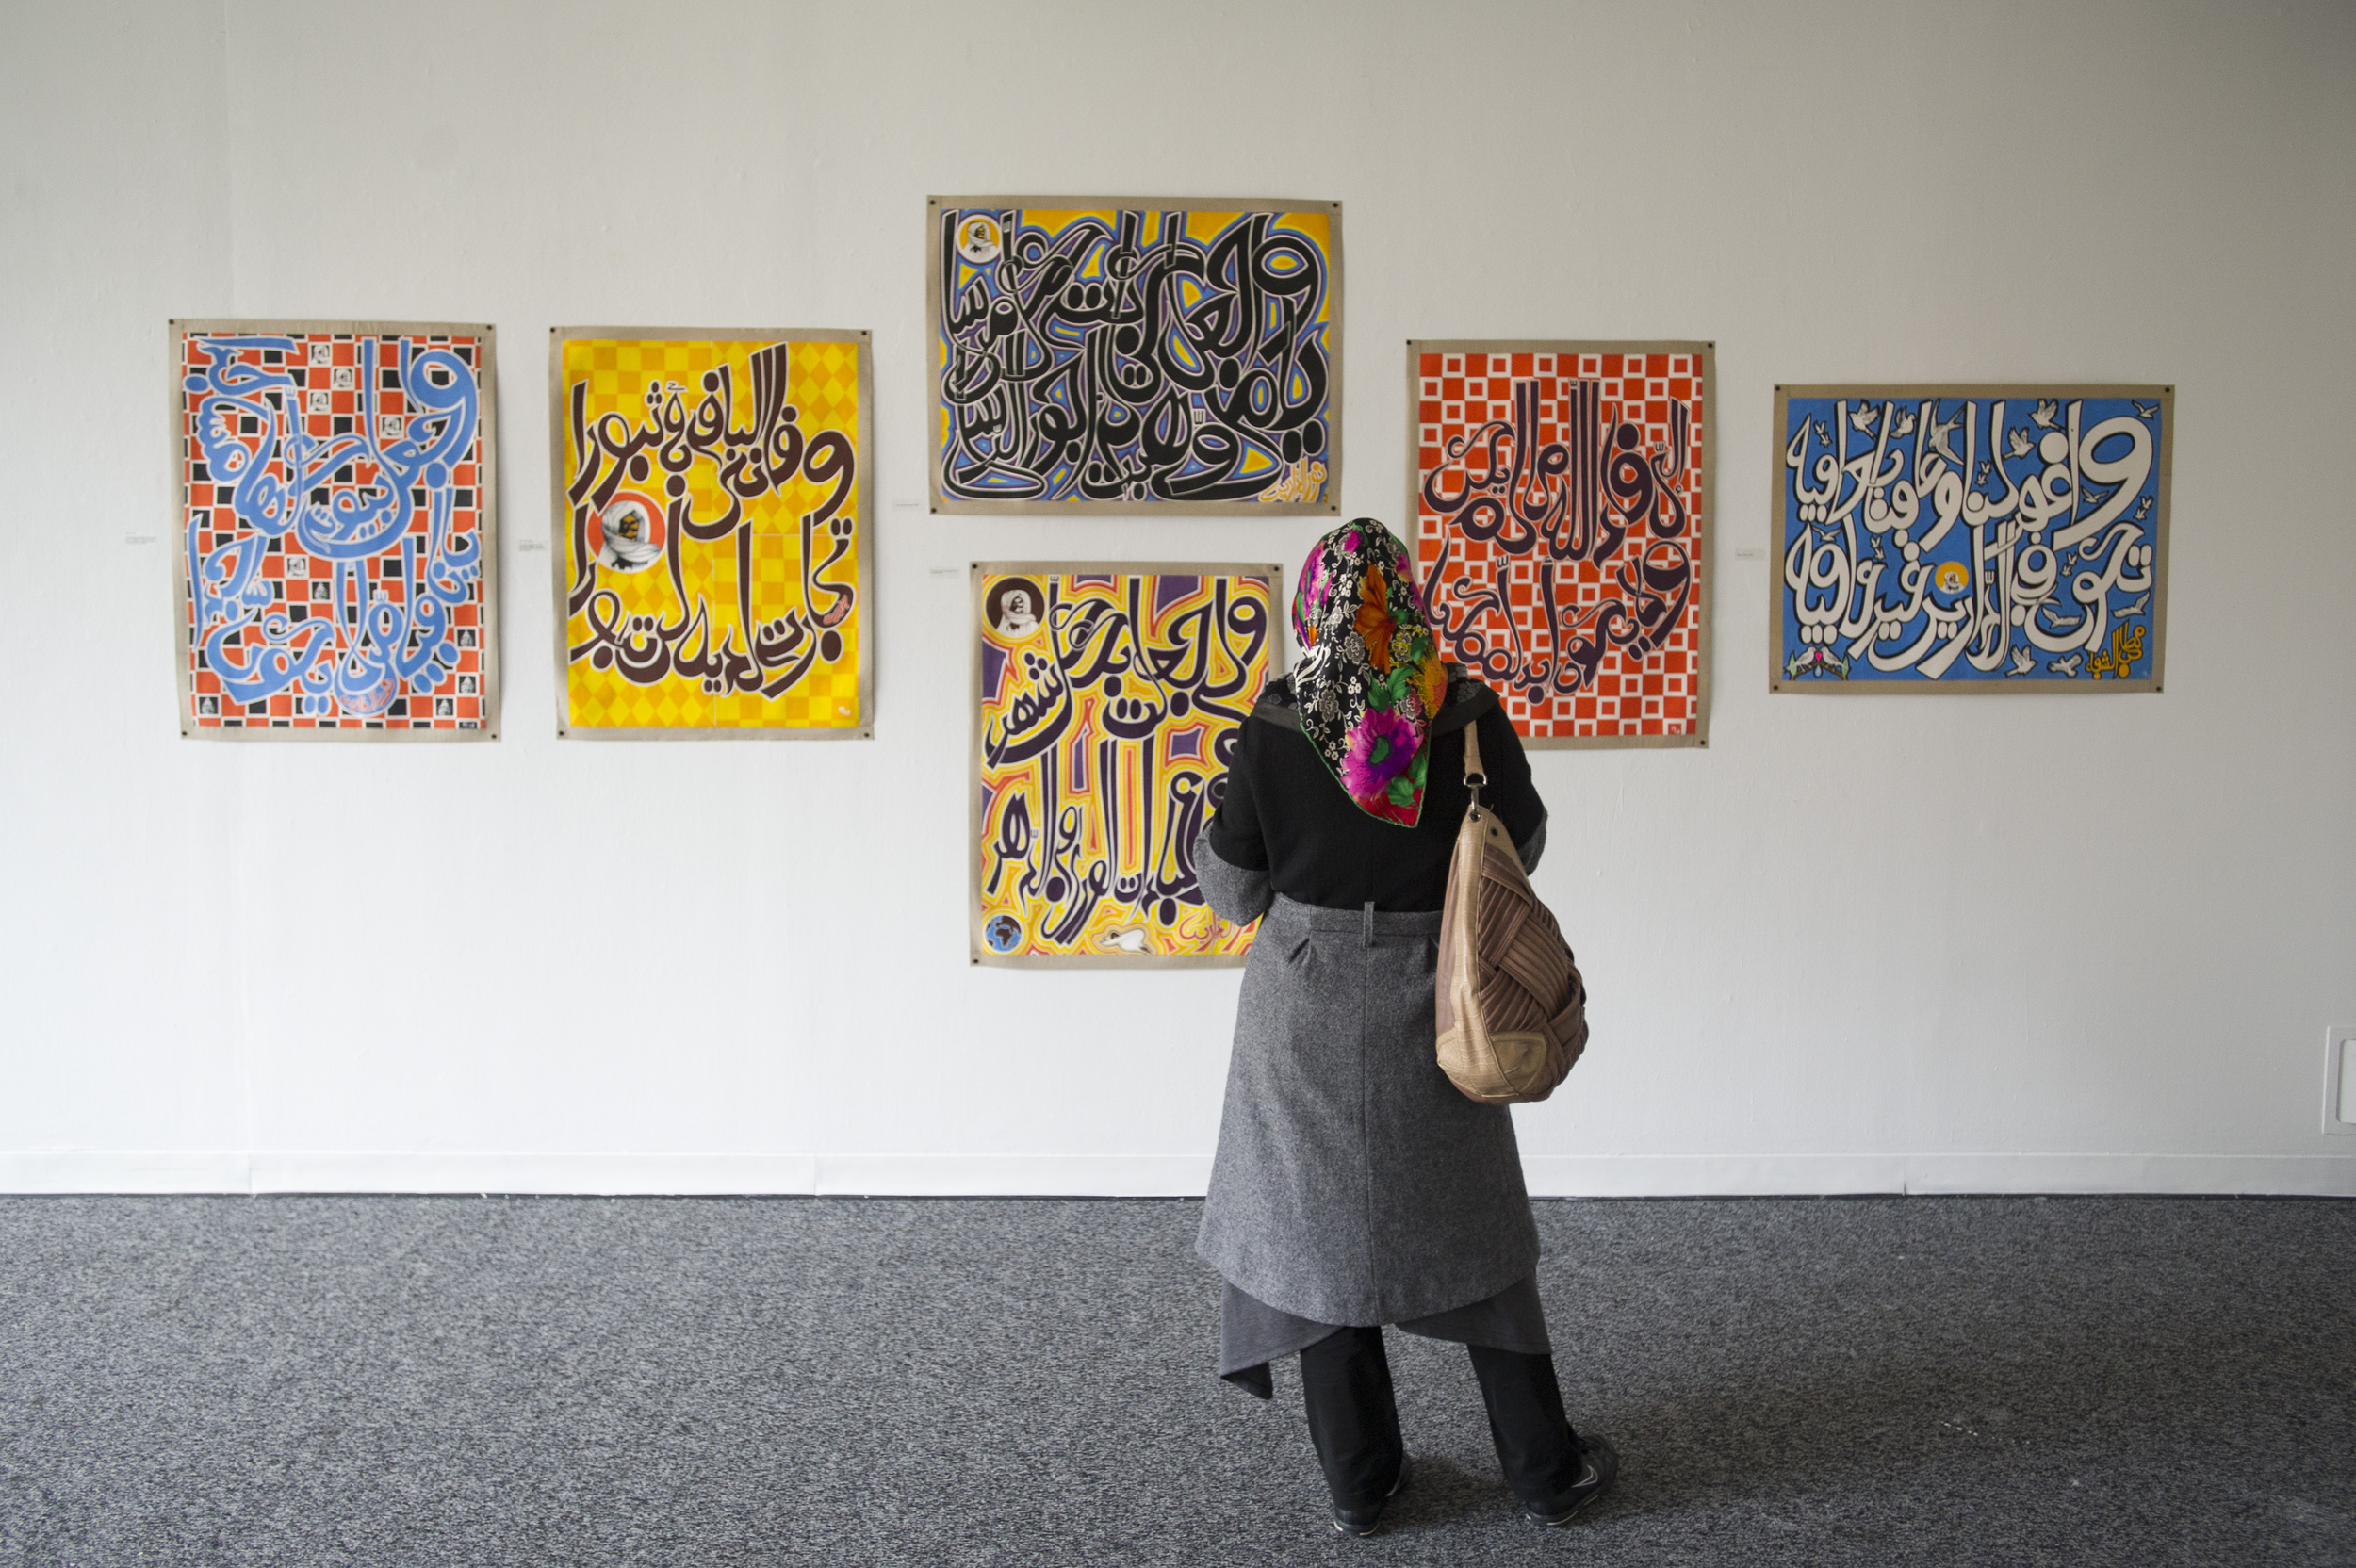 Zehra Kaya, who is from Turkey and is a BU CELOP student, admires the work of Yemine Fall, which is on display in the GSU Gallery.   Photo by Cydney Scott for Boston University Photography